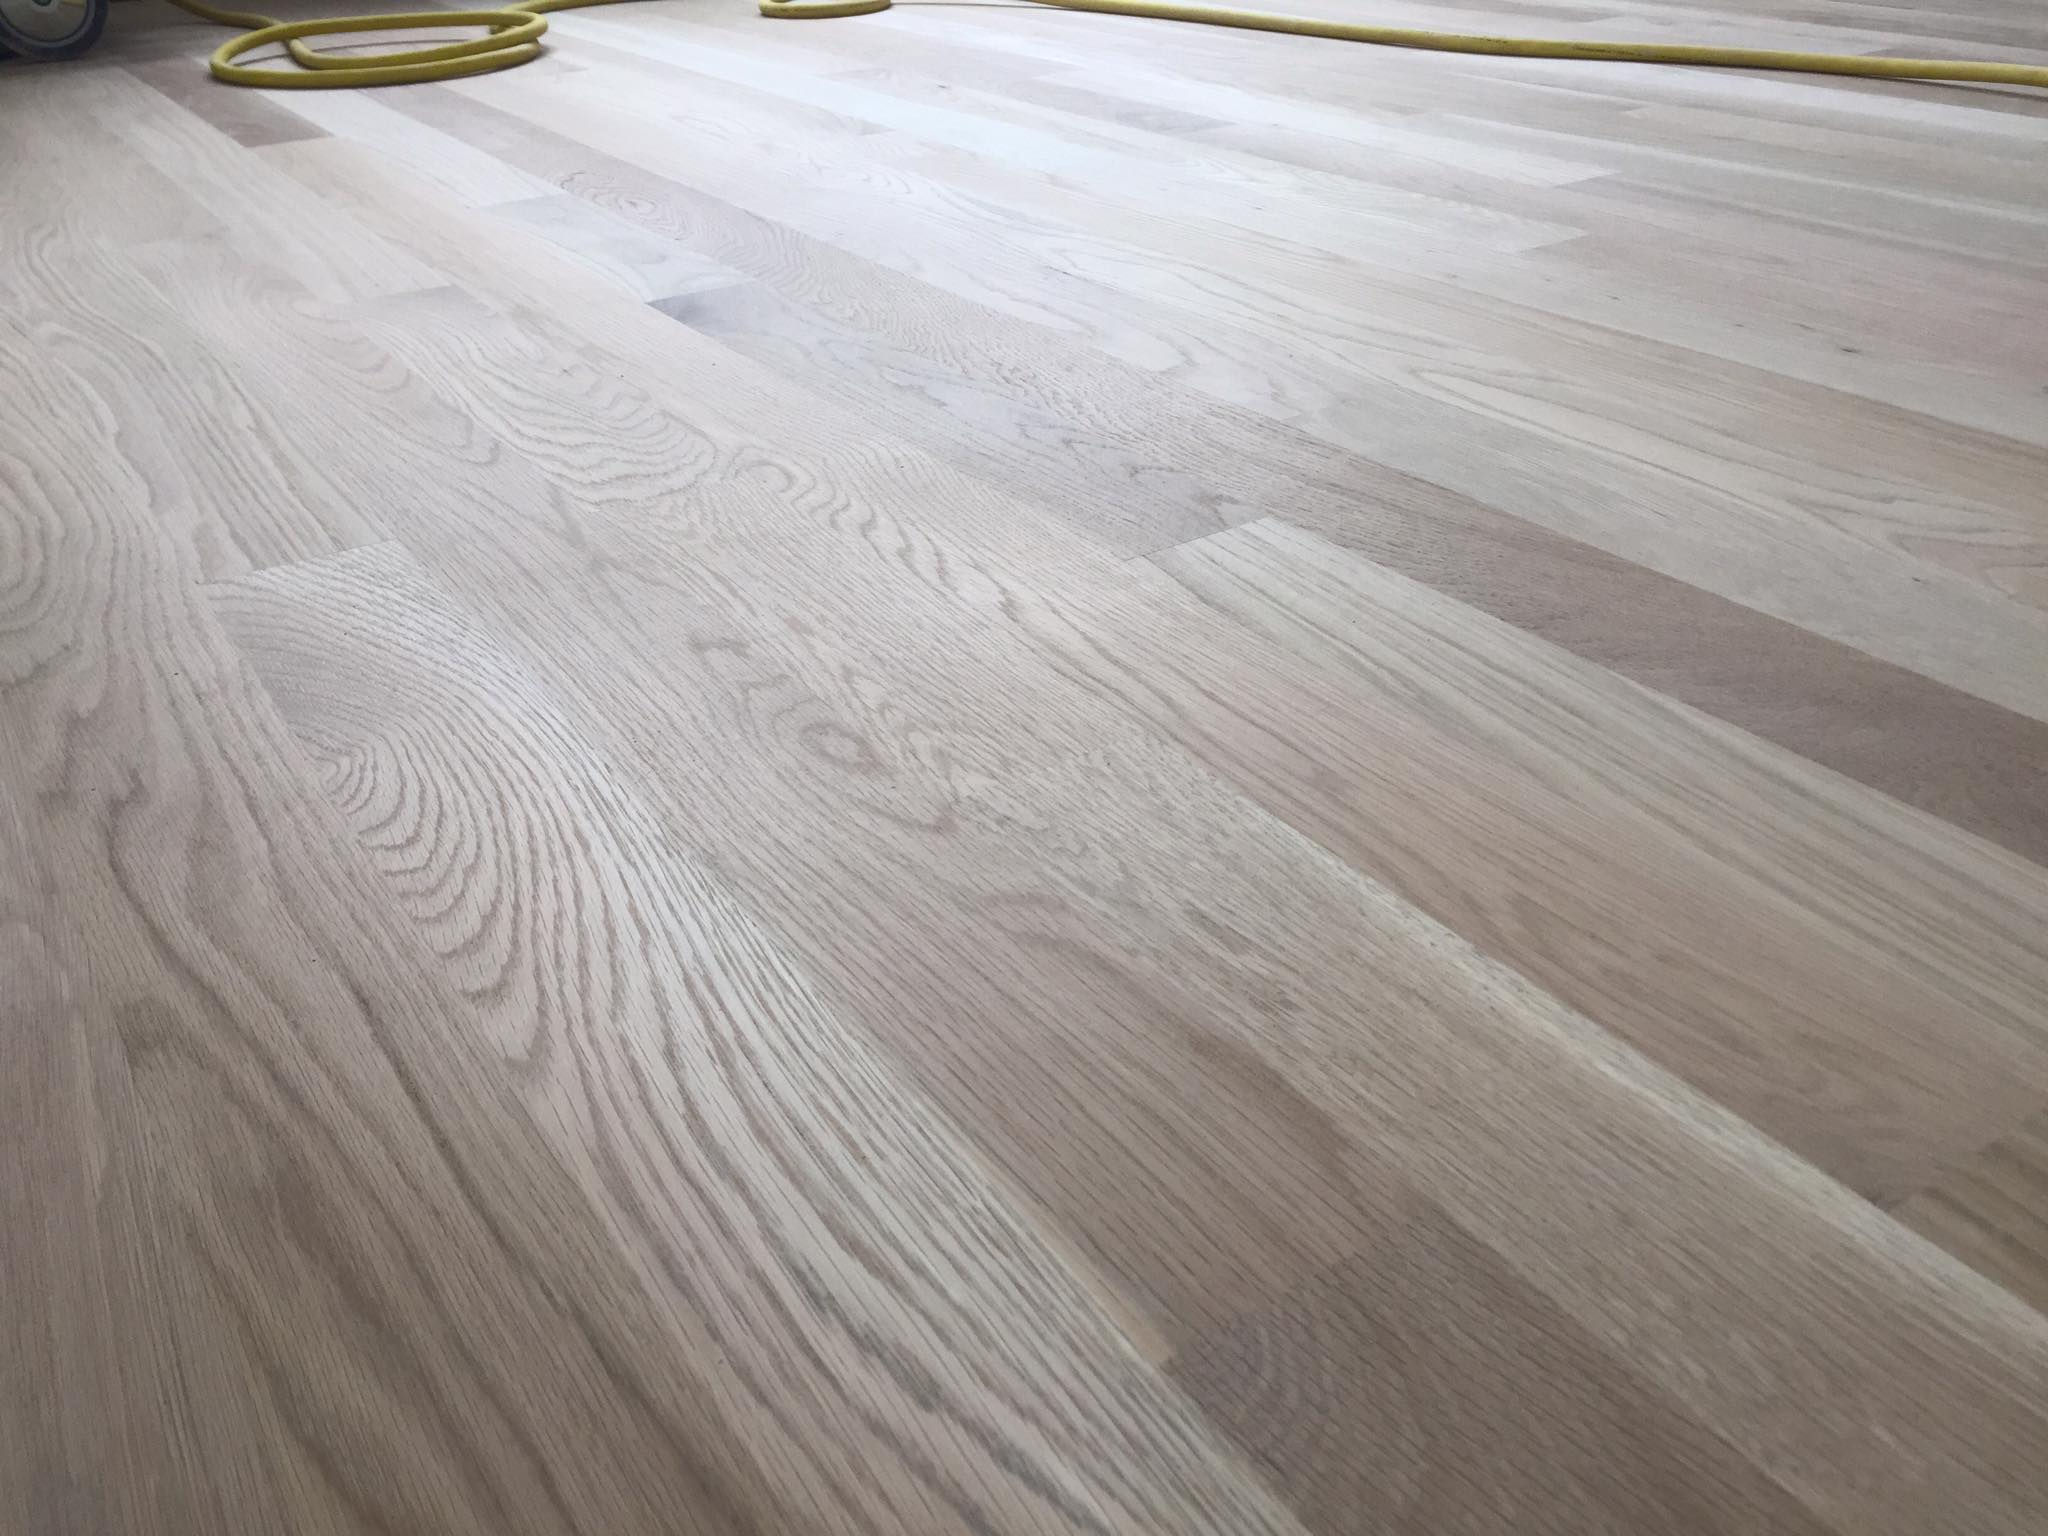 "Solid White Oak 3 1 4"" Hardwood Floor Installation Chicago Tom"